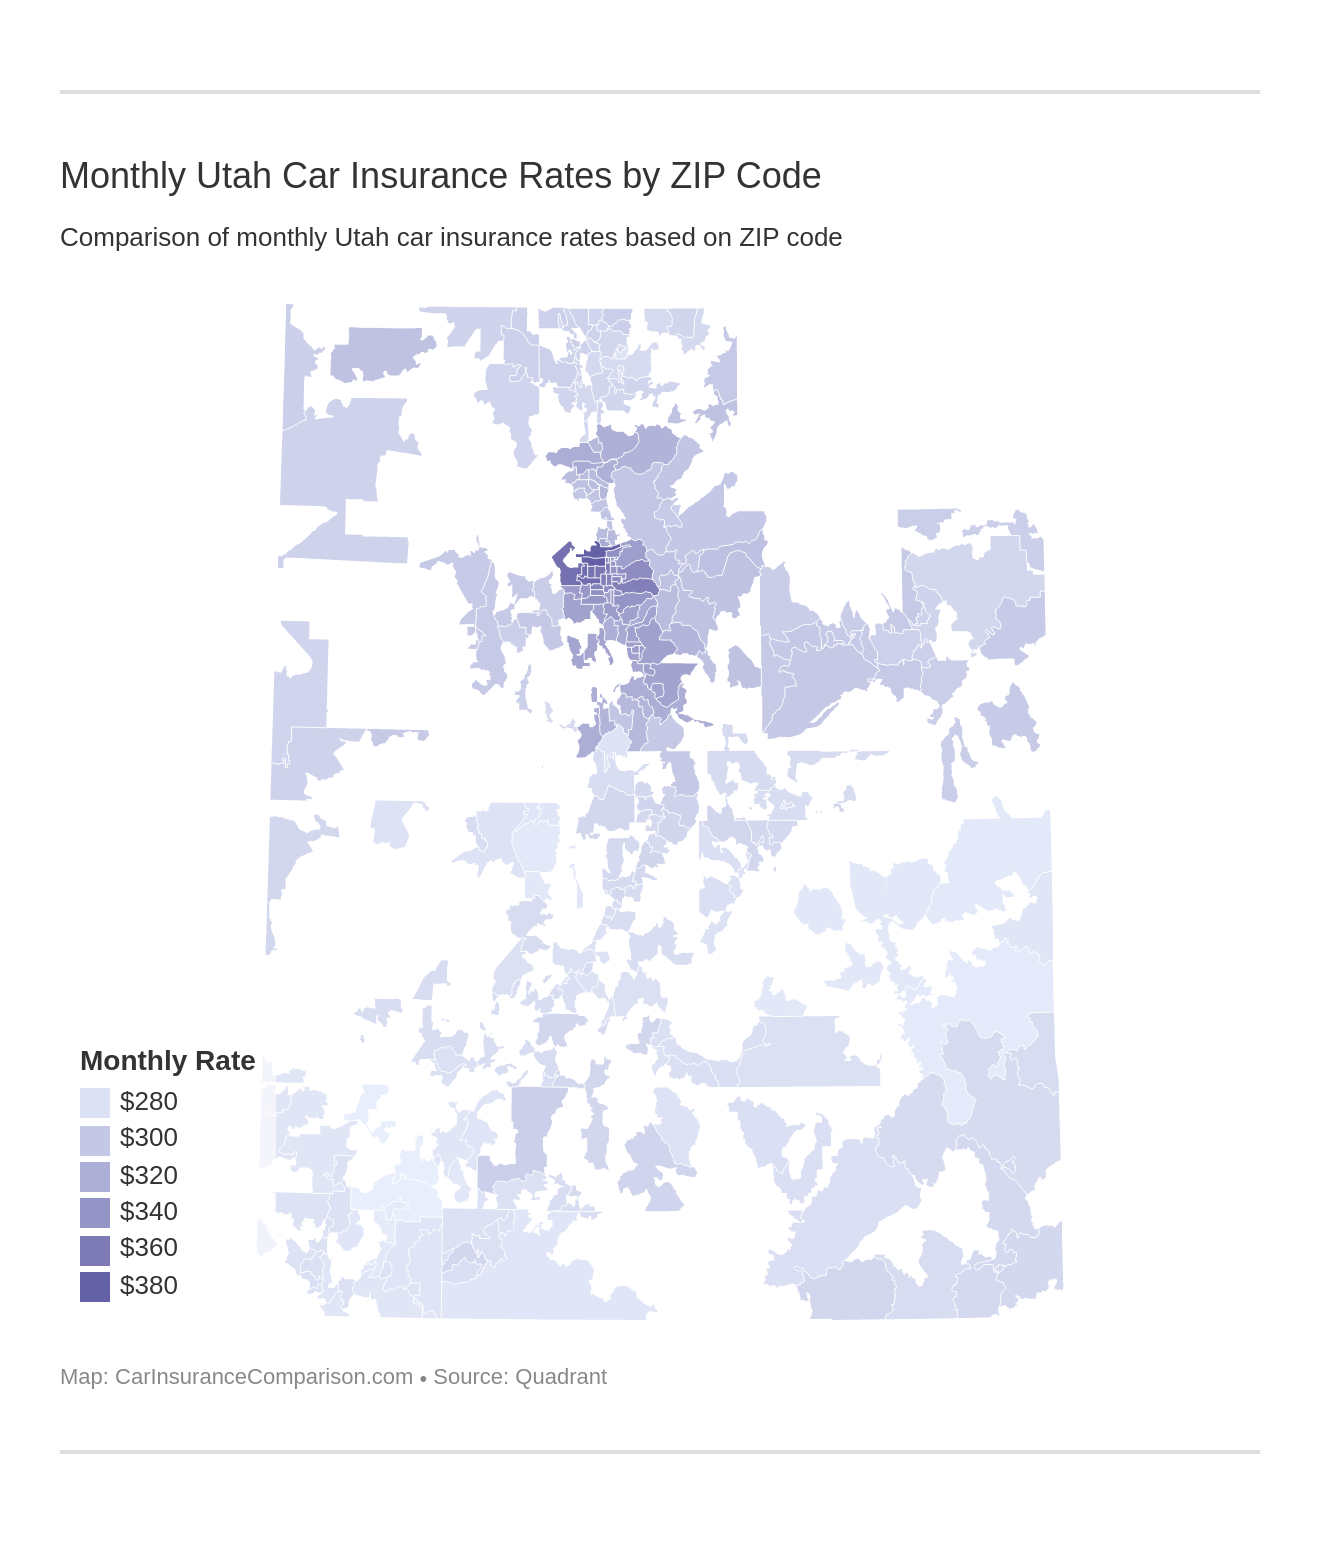 Monthly Utah Car Insurance Rates by ZIP Code